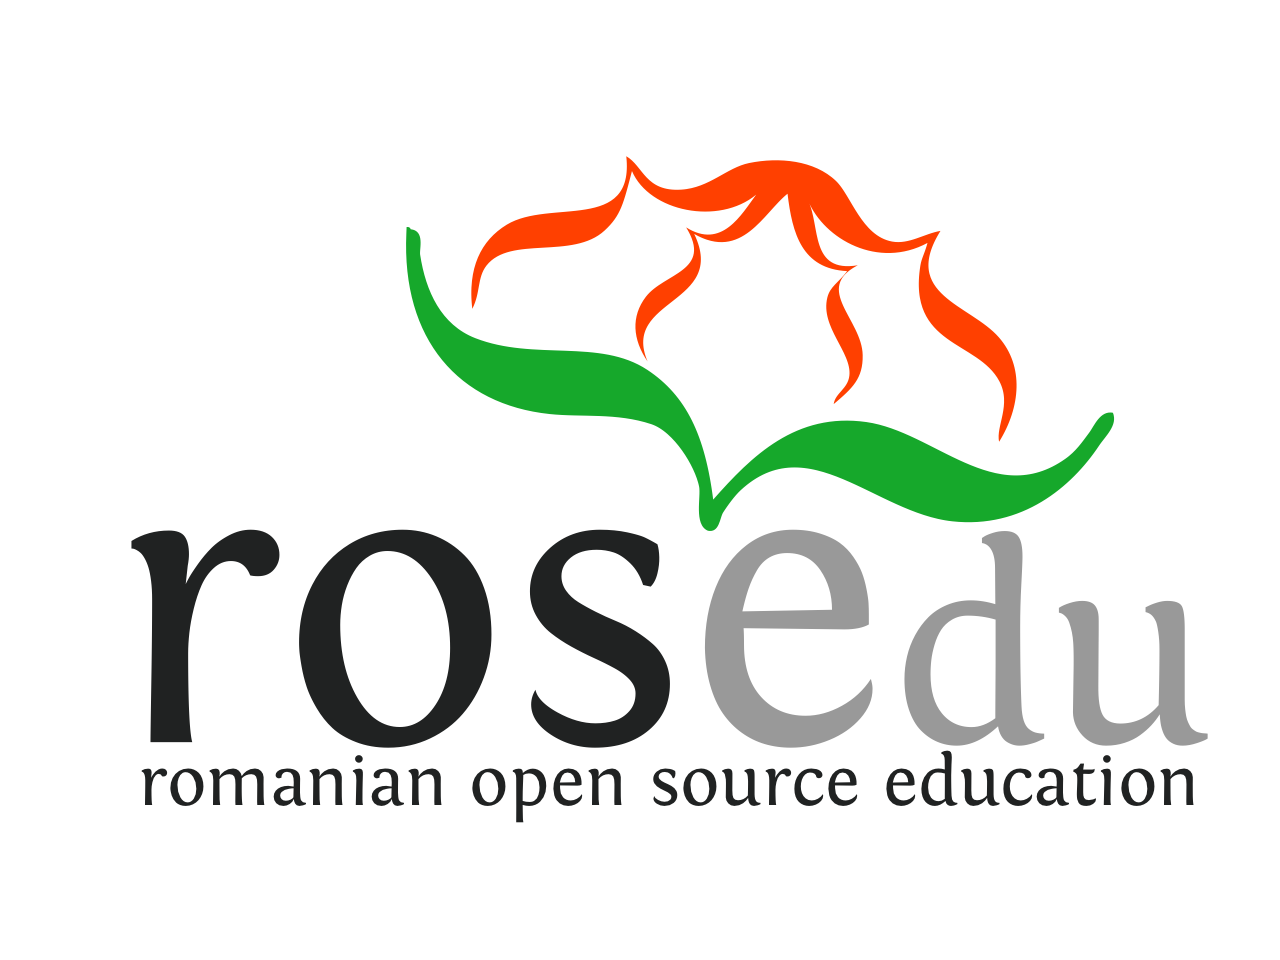 Romanian Open Source Education